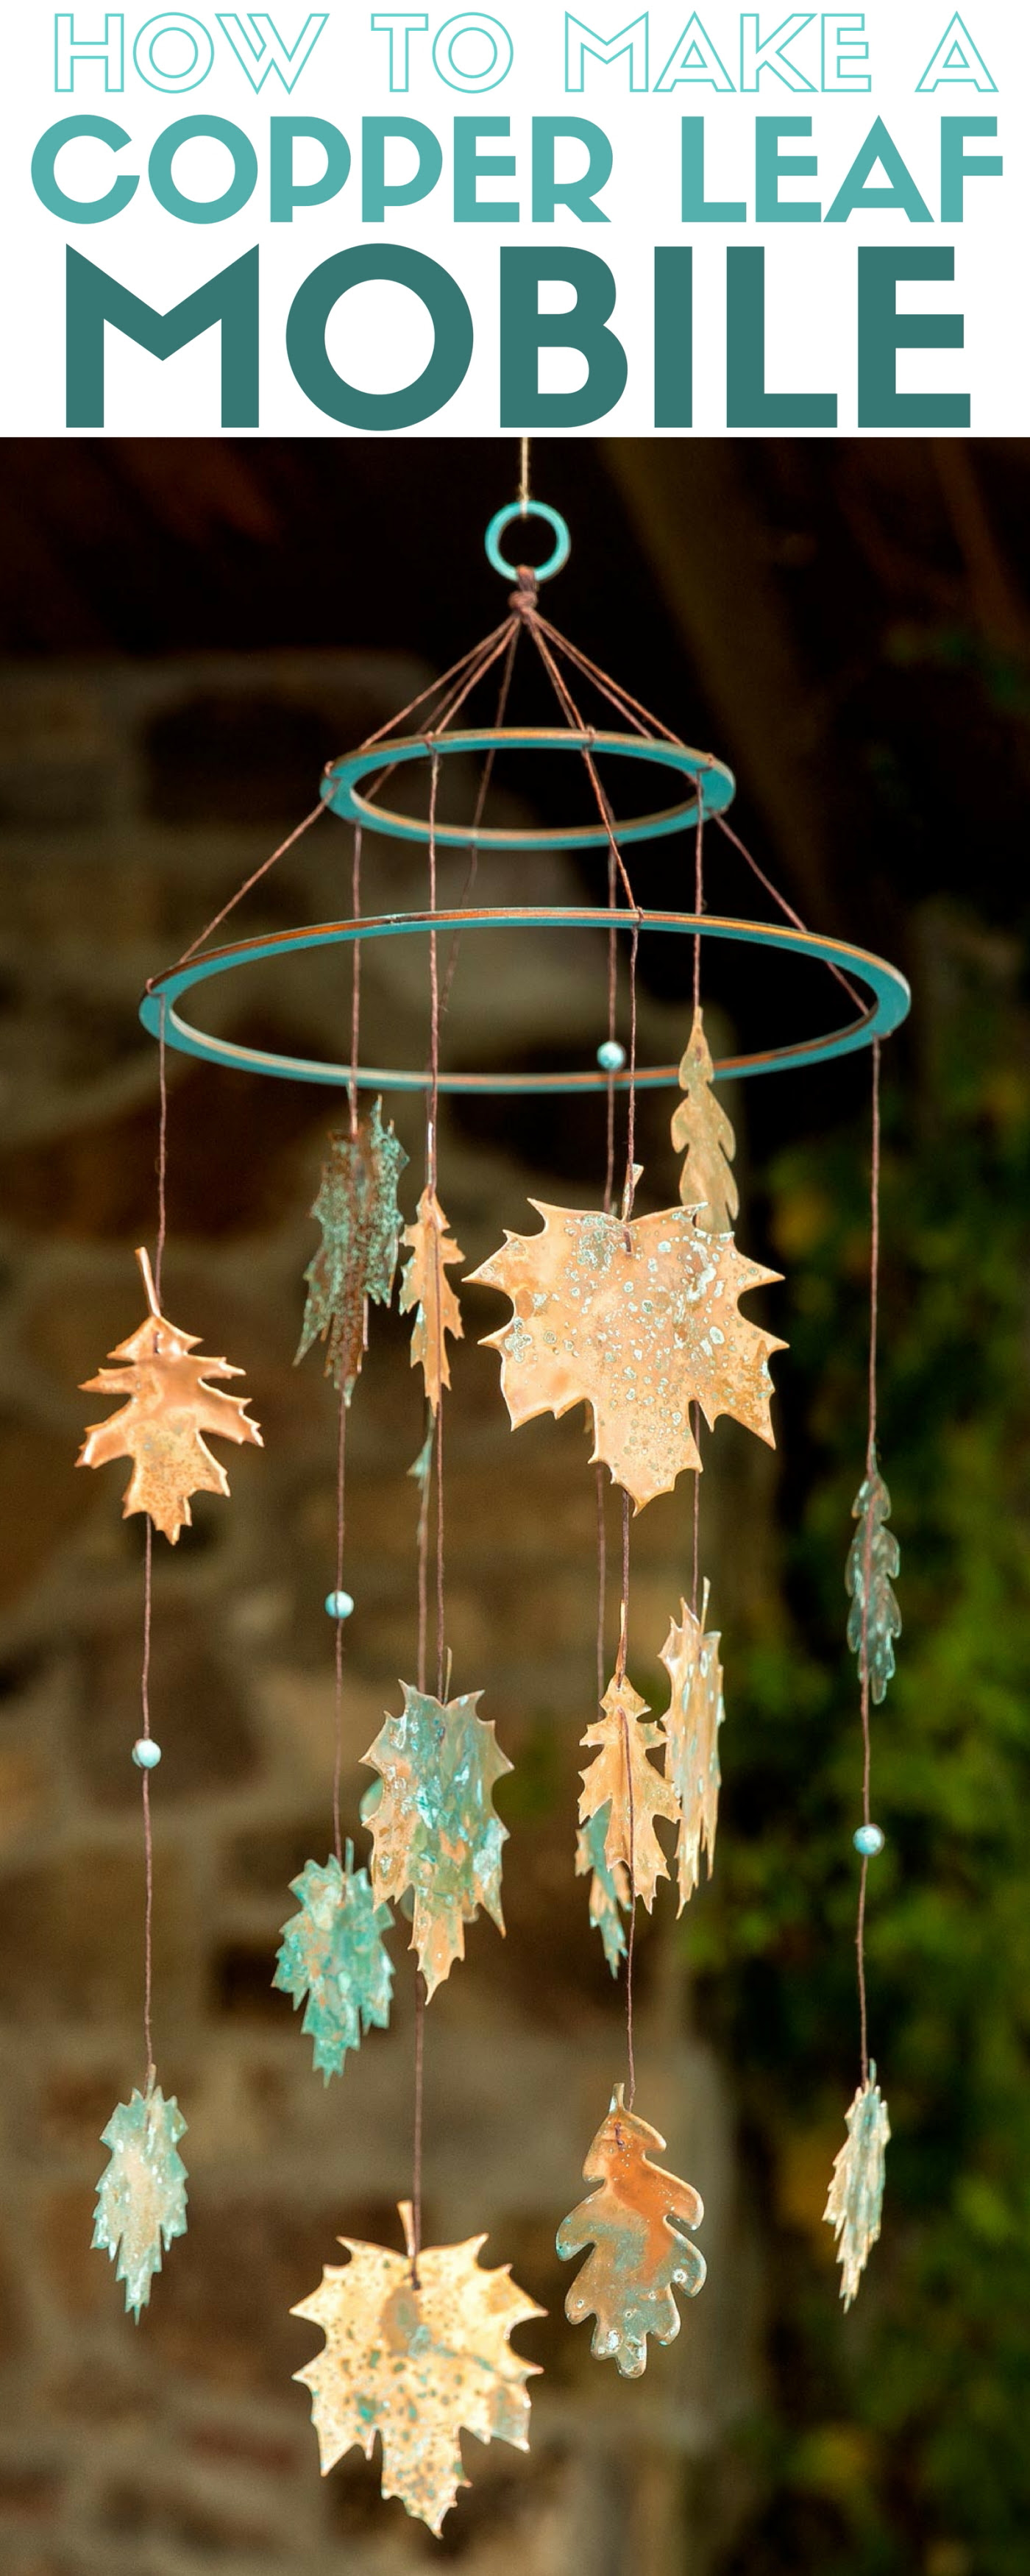 DIY Copper Leaf Mobile